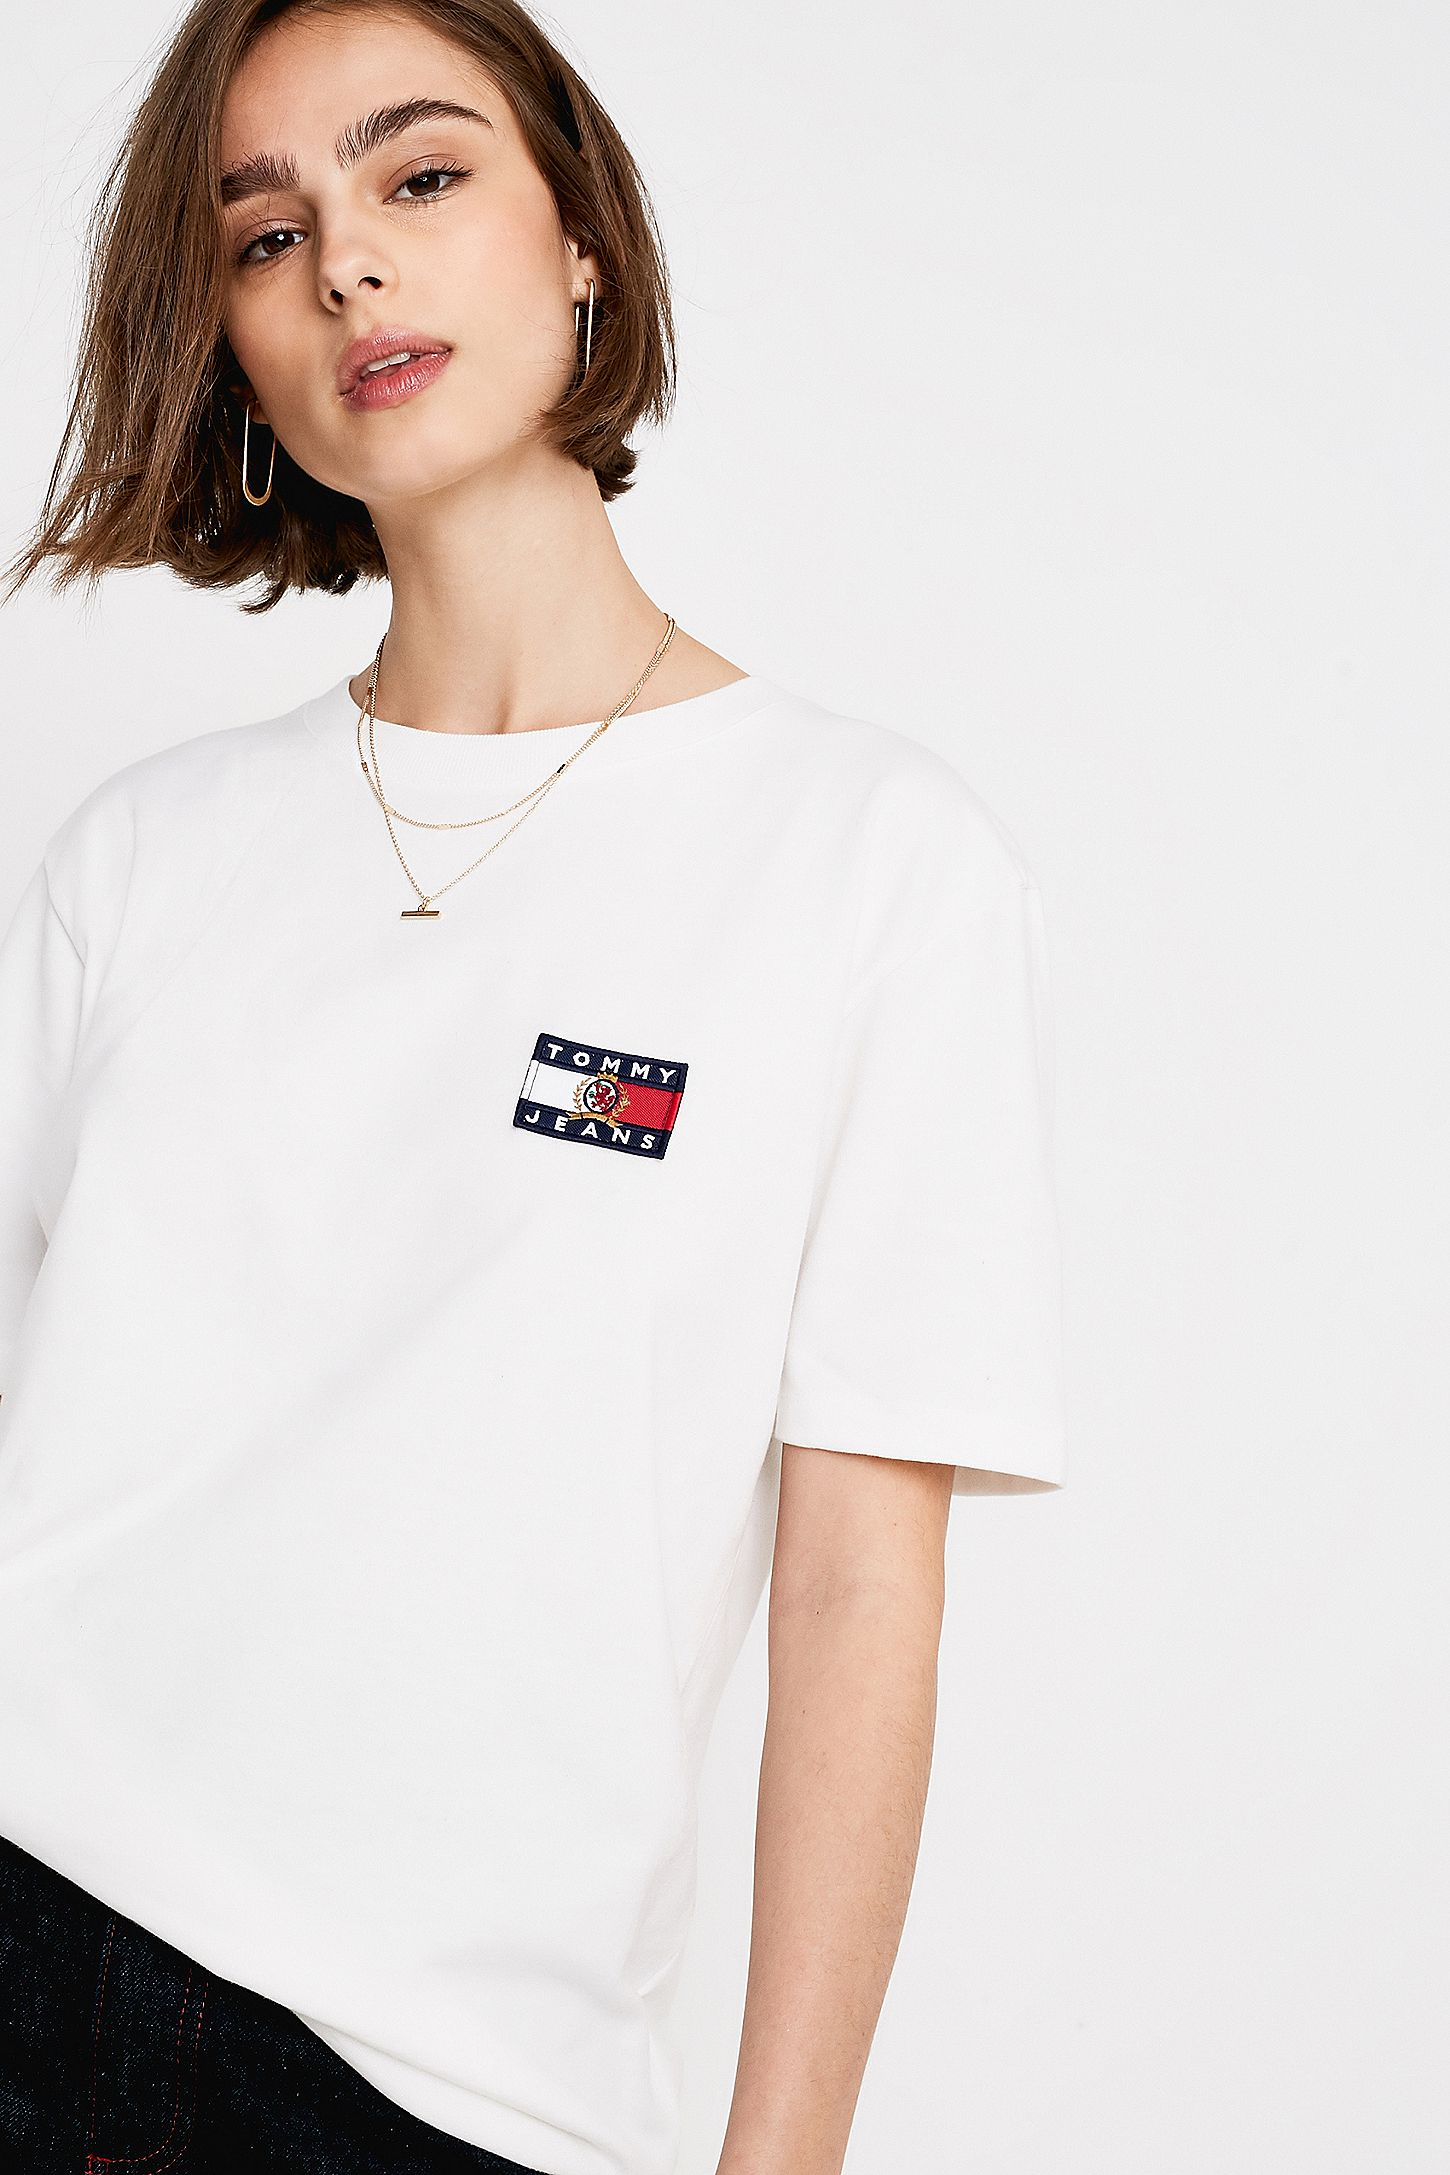 21bbf6e7 Tommy Jeans Crest Collection White Flag Logo T-Shirt | Urban ...